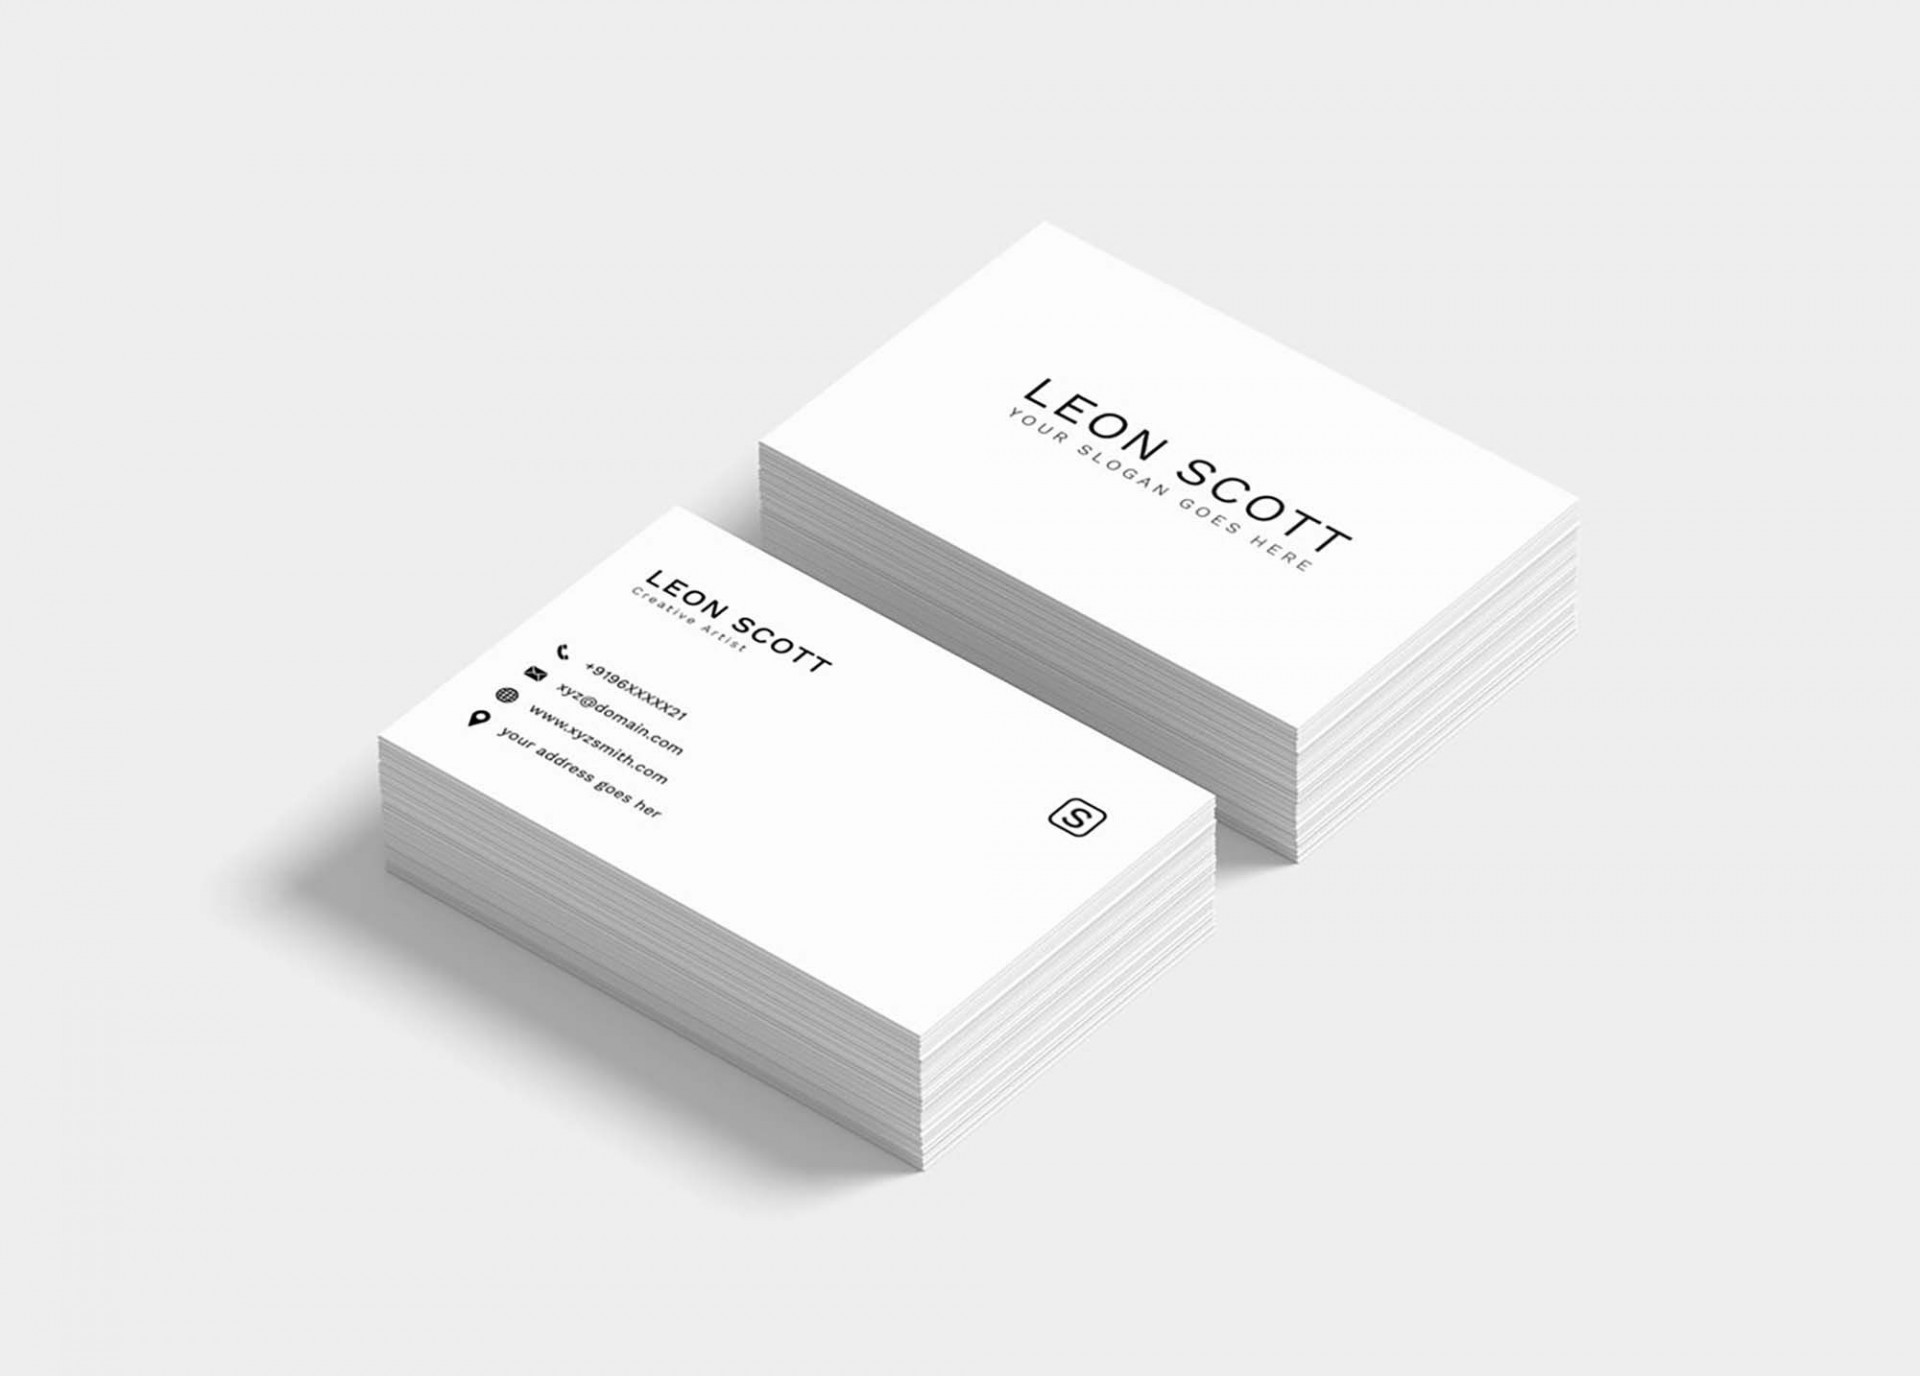 005 Unusual Simple Busines Card Design Template Free Highest Clarity  Minimalist Psd Visiting File Download1920